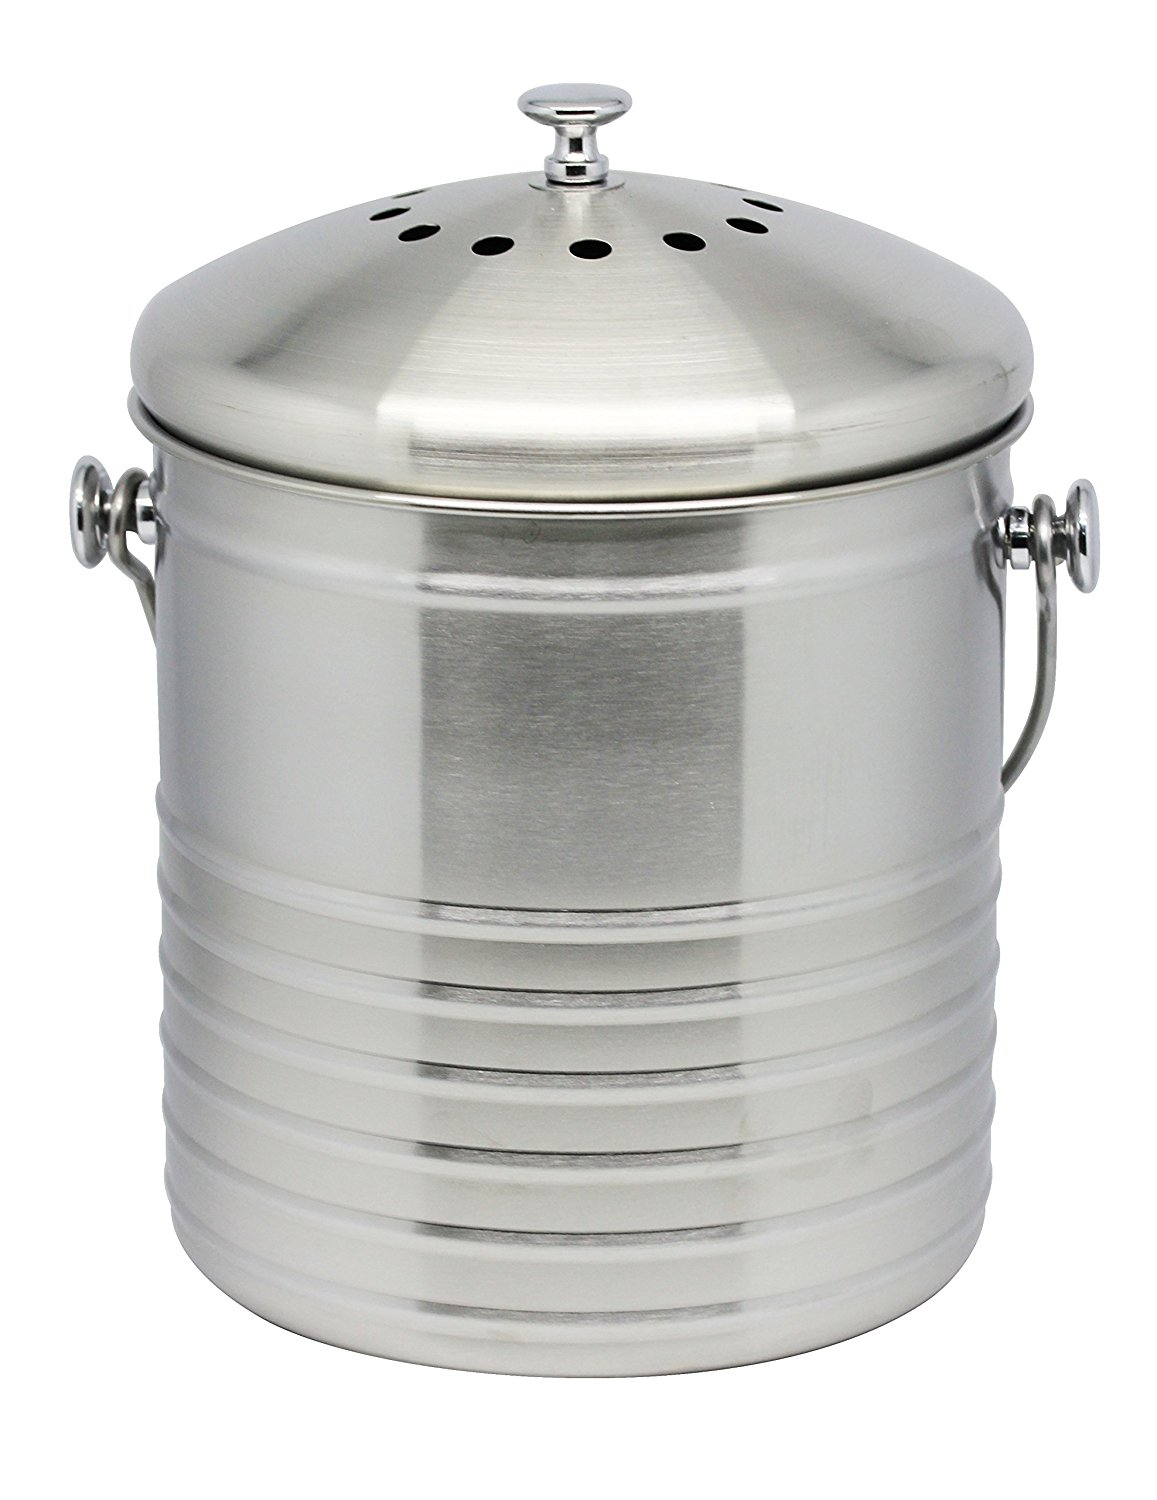 cedar grove 18g stainless steel em kitchen compost bin includes 1 charcoal filter and